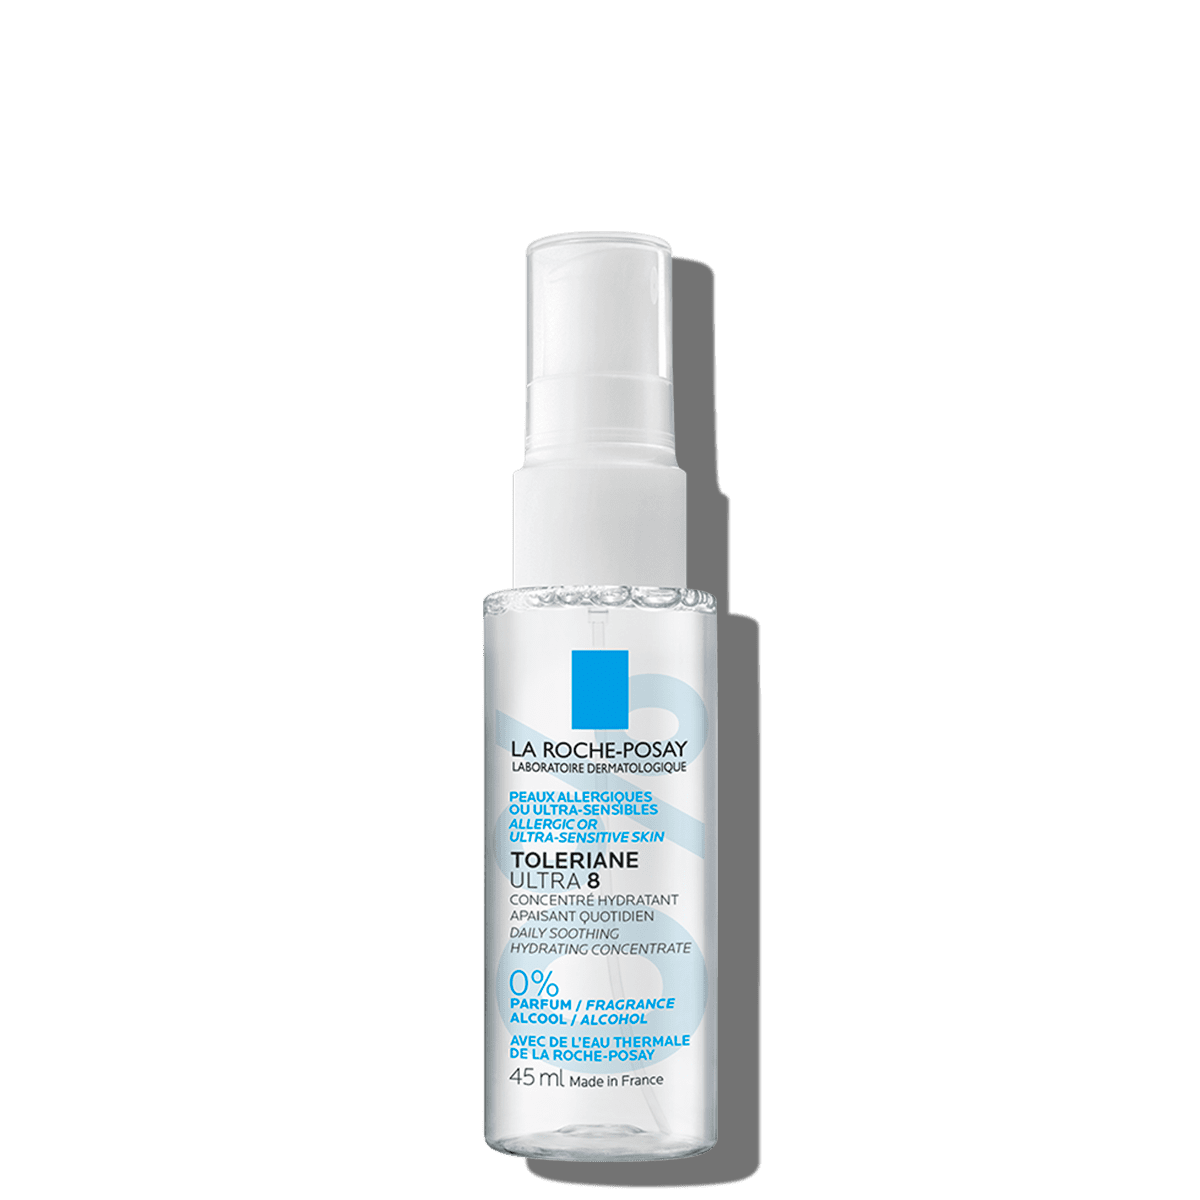 Toleriane Ultra 8 45ml Daily Soothing Hydrating Concentrate